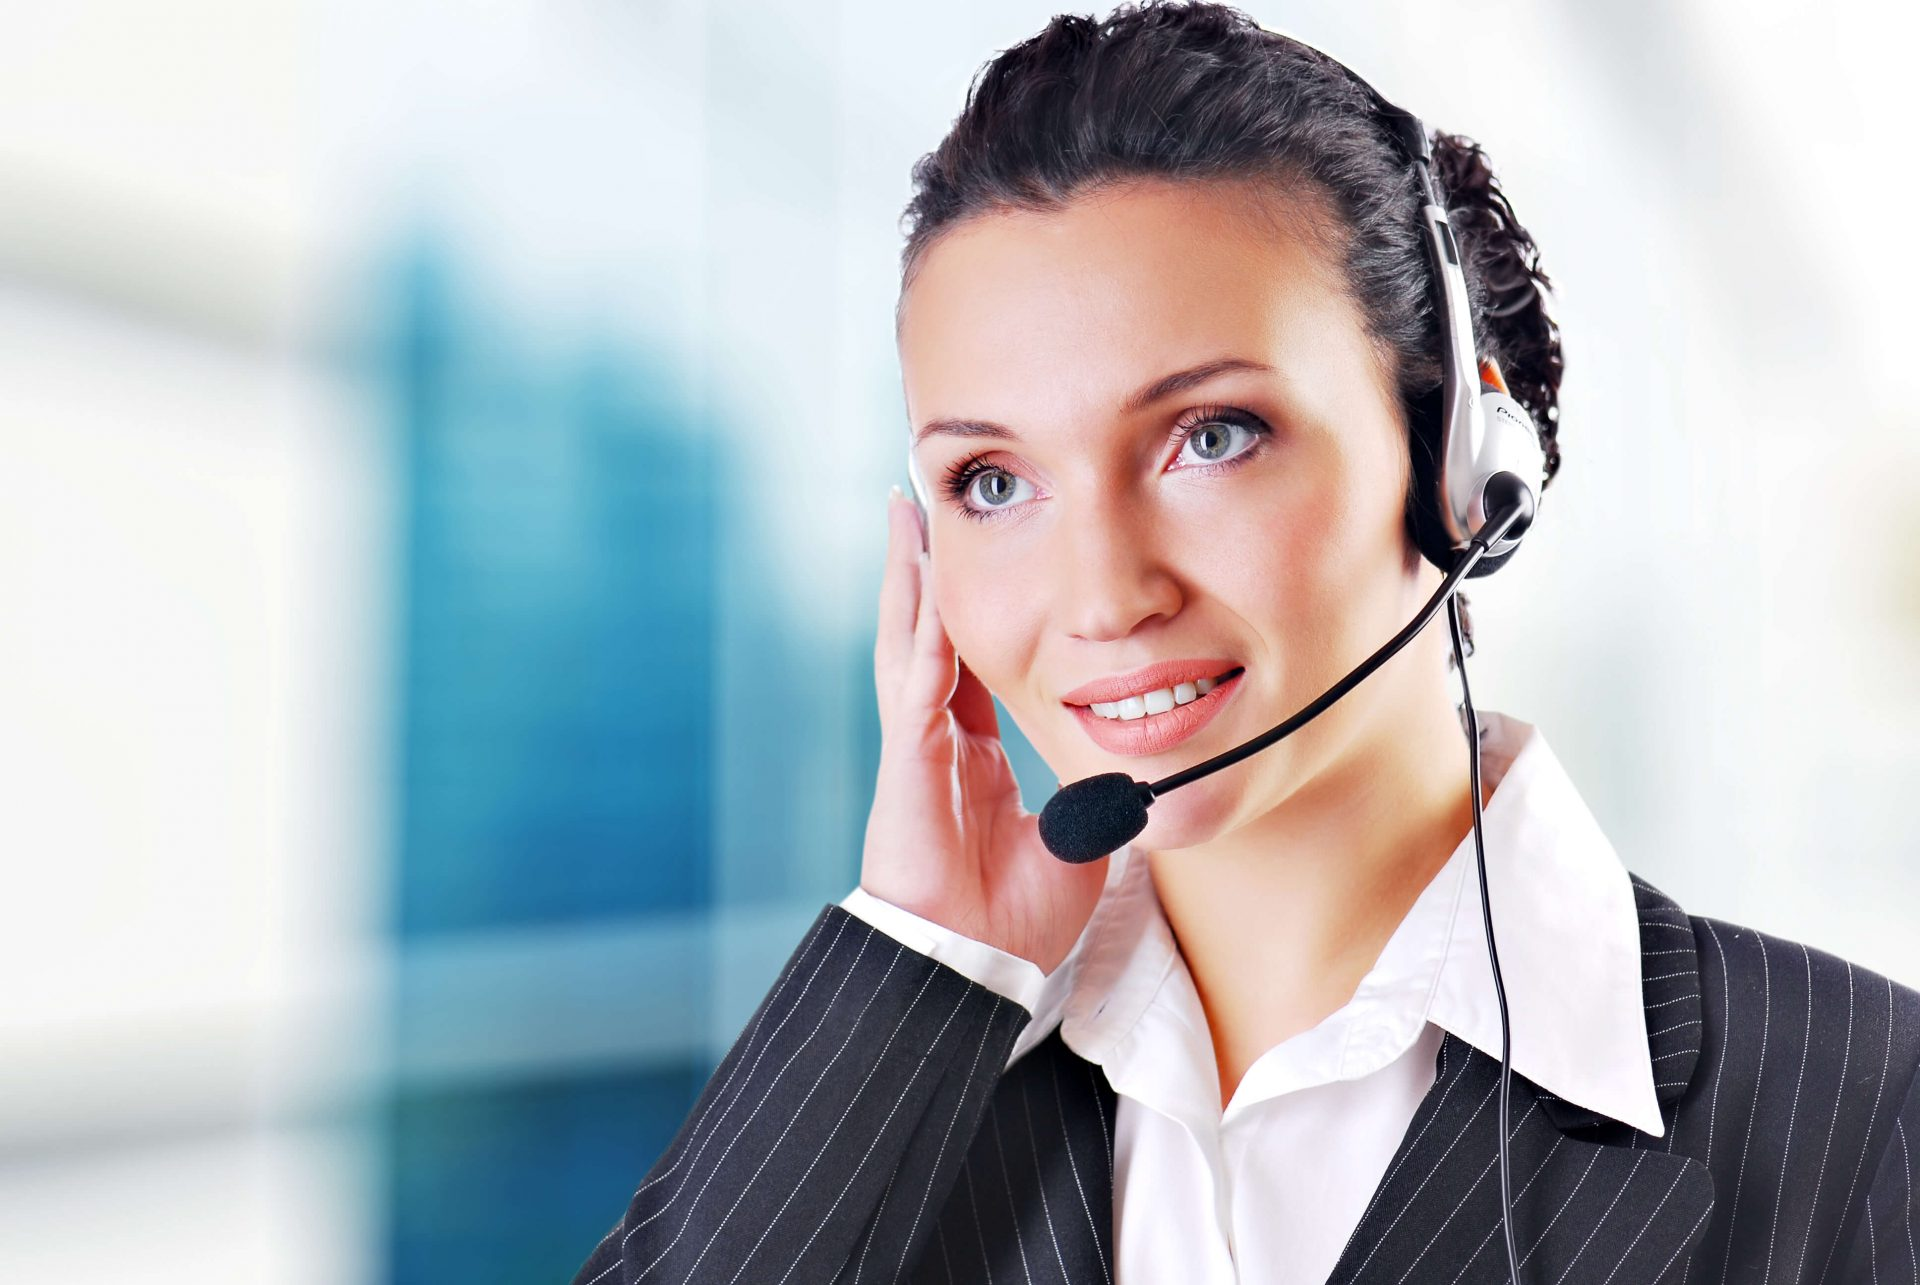 woman-wearing-headset-office-could-be-receptionist (1)